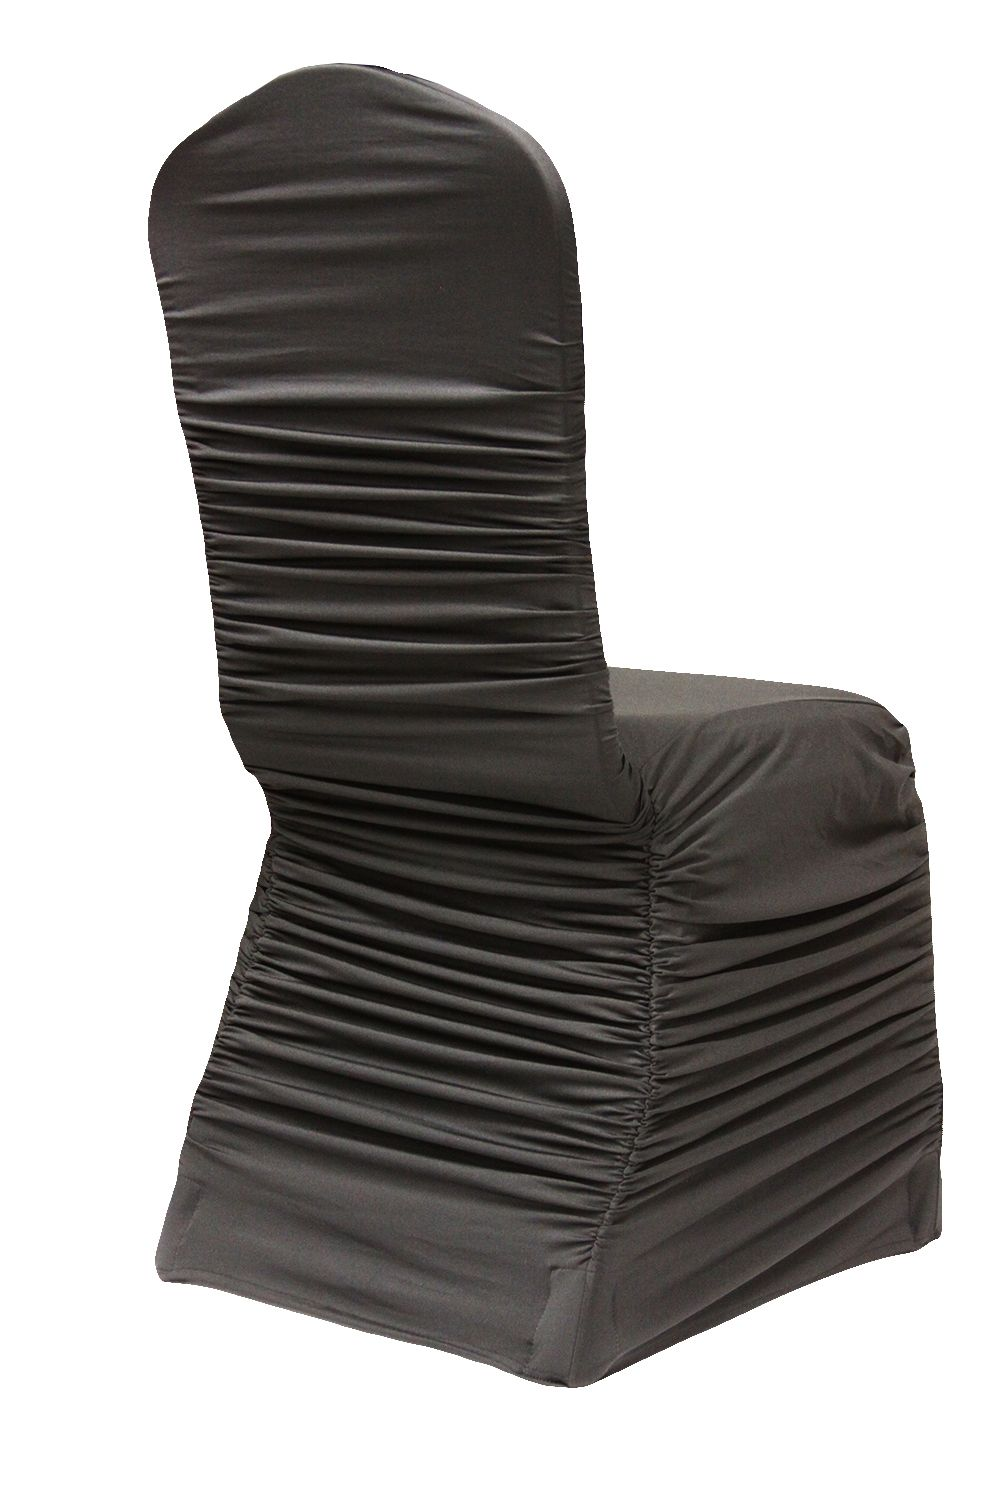 Ruched Fashion Spandex Banquet Chair Cover Black Banquet Chair Covers Spandex Chair Covers Chair Covers